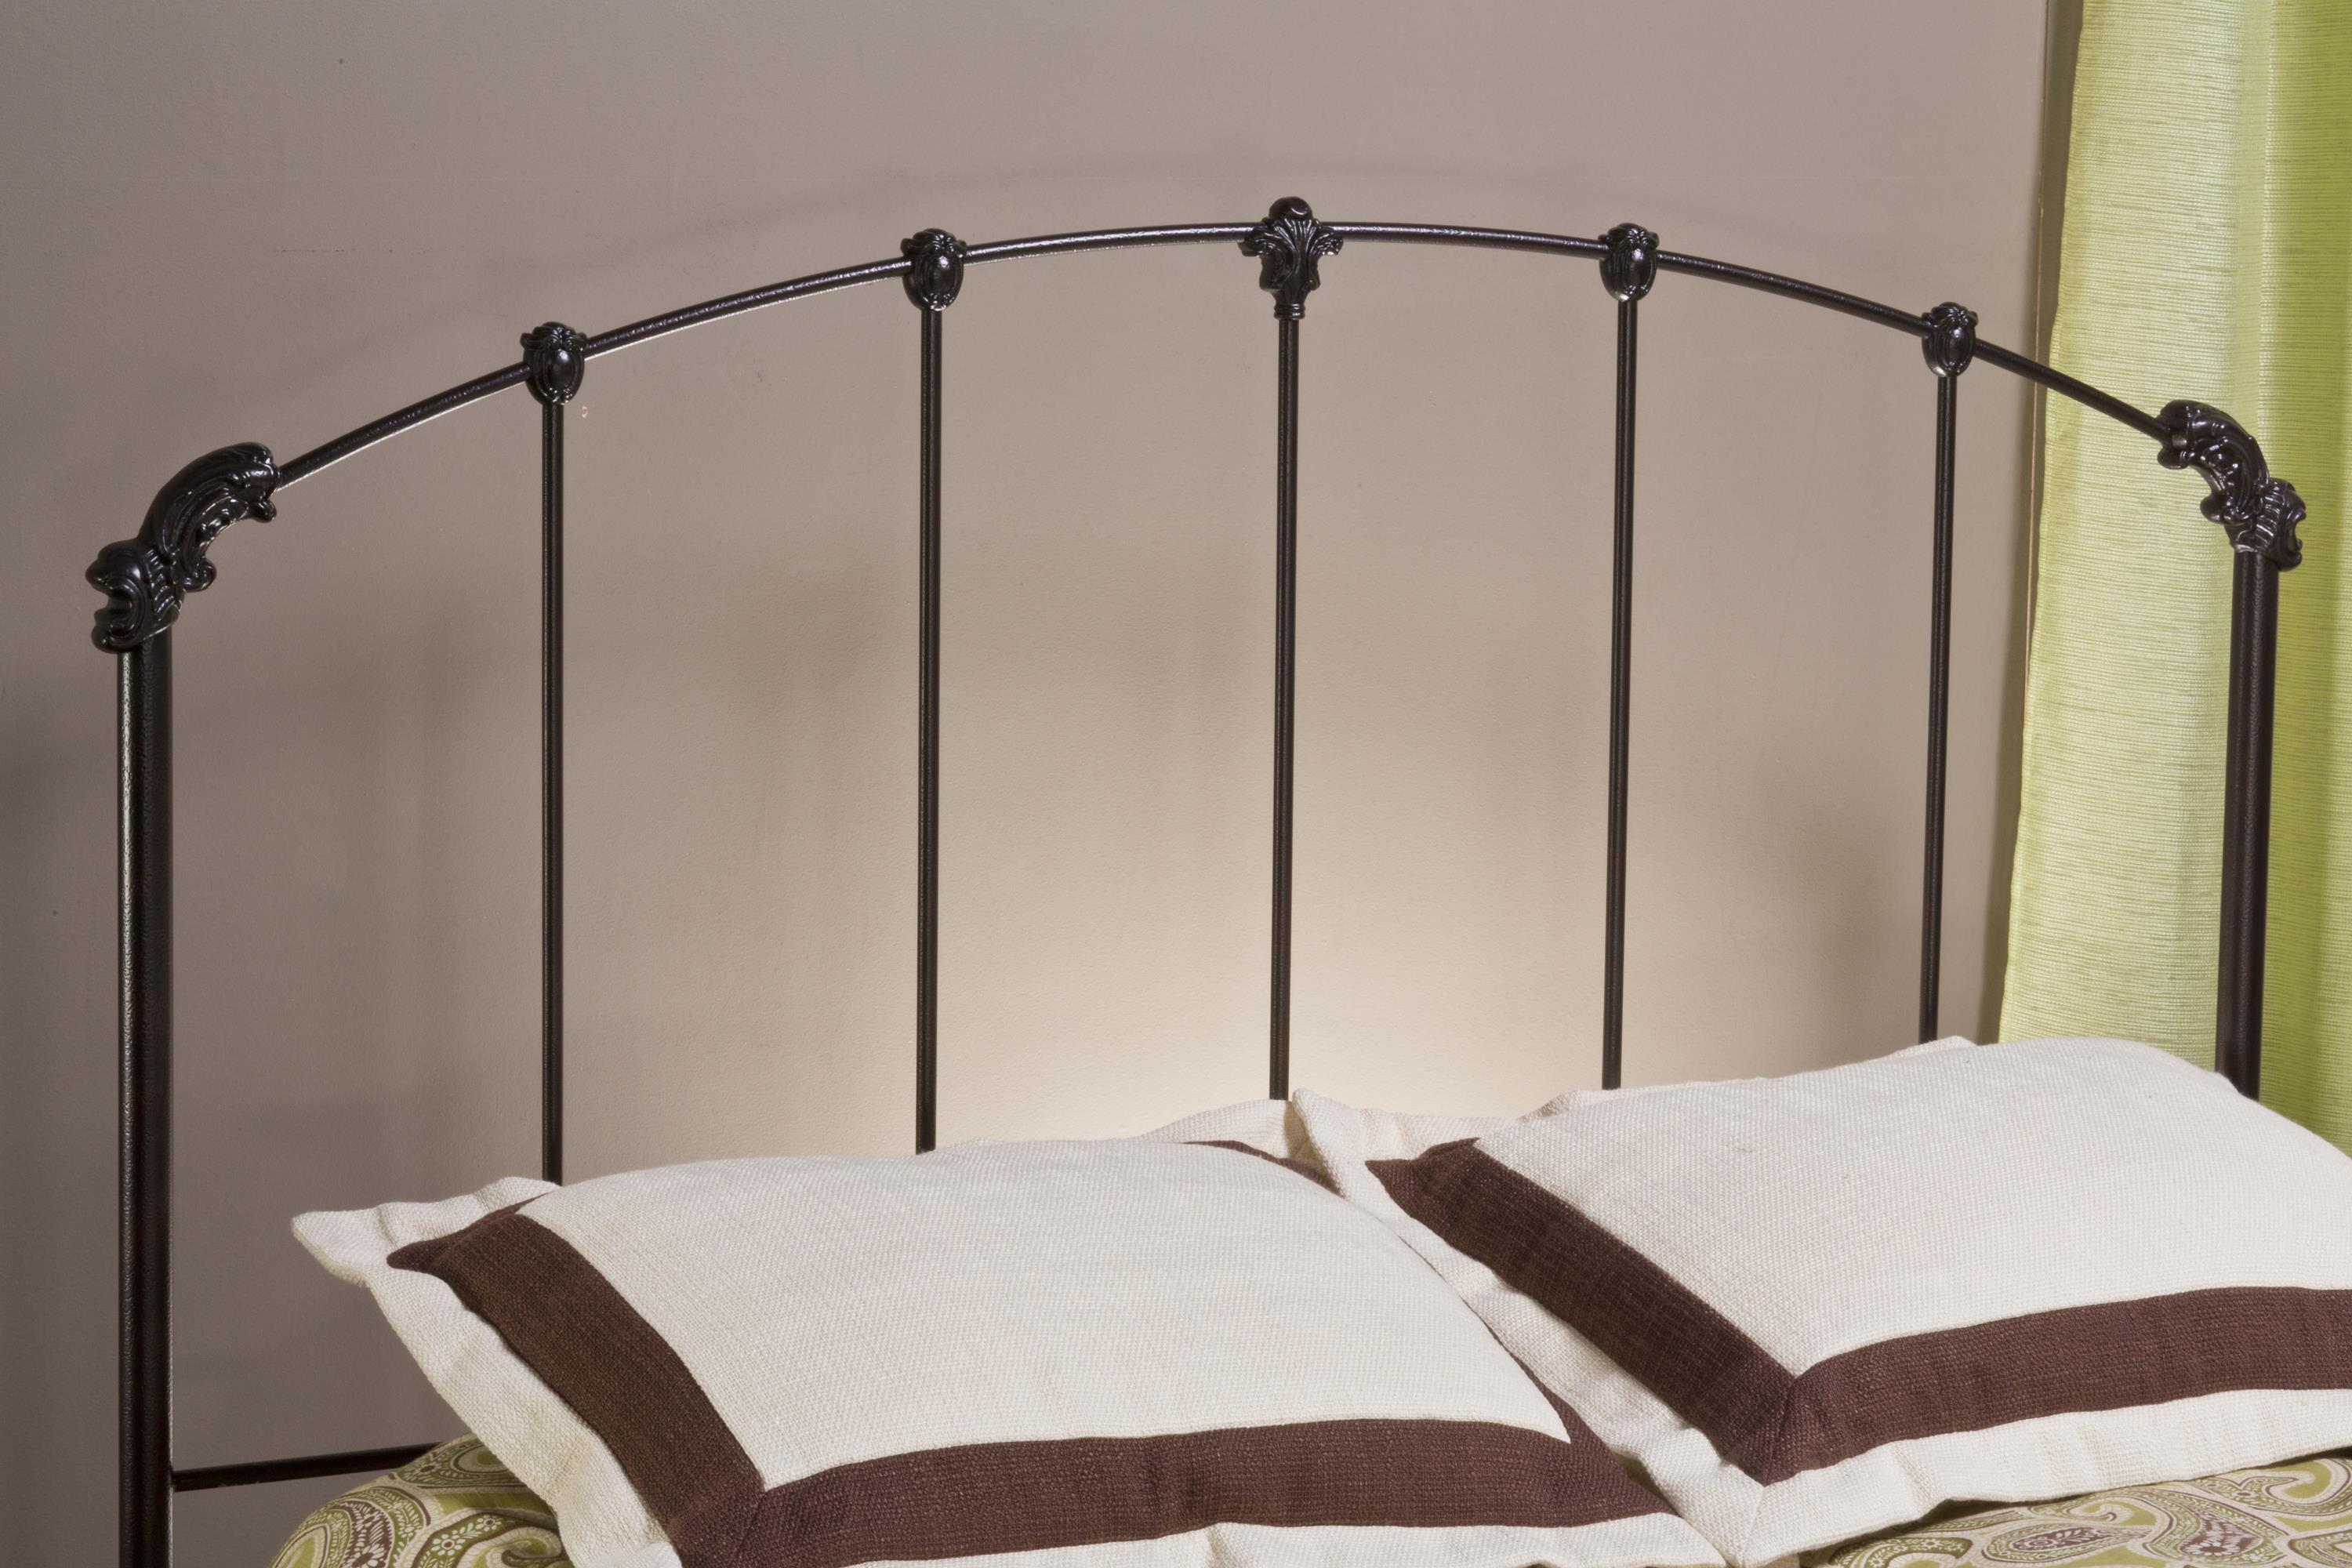 Hillsdale Metal Beds Bonita Twin Headboard - Item Number: 346-340